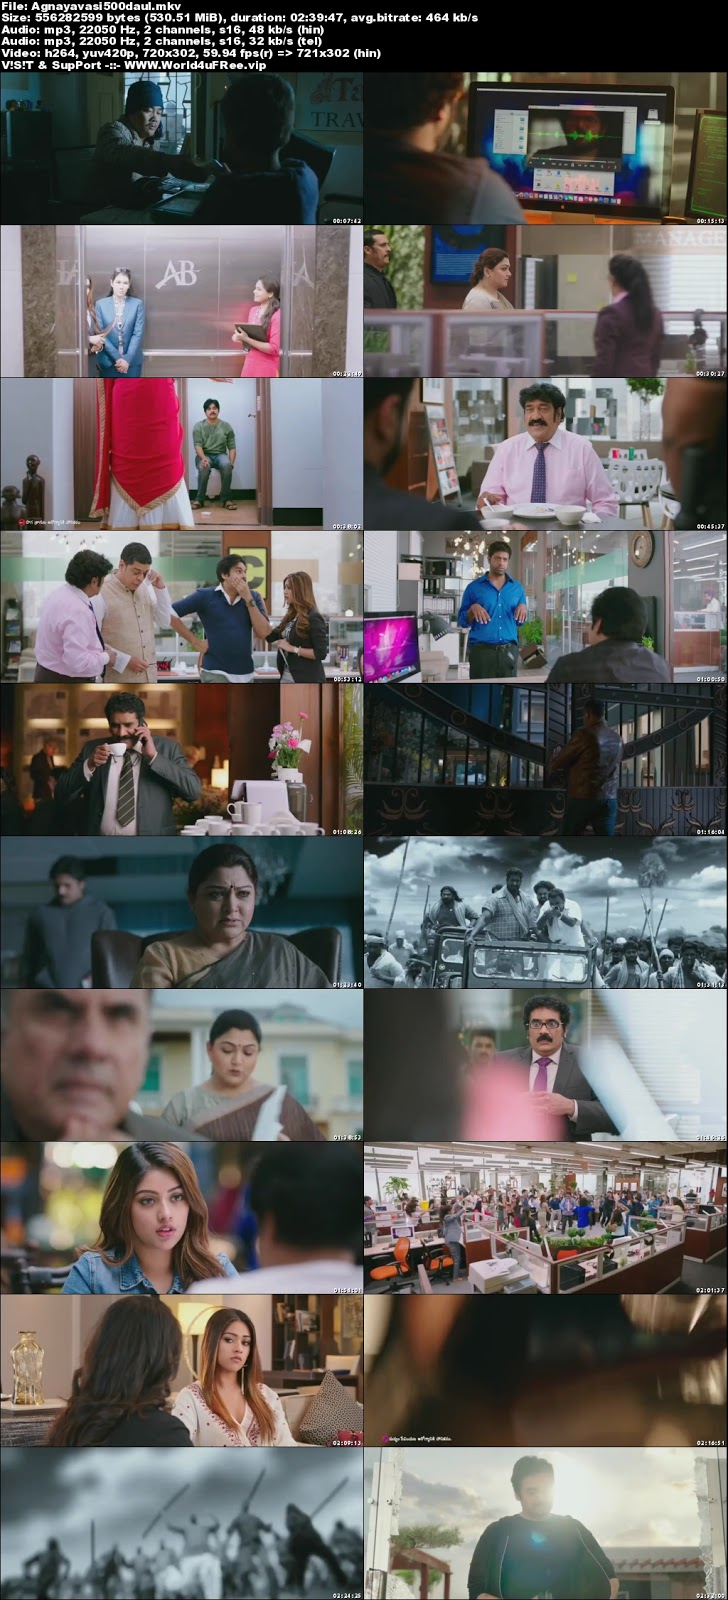 Agnyaathavaasi 2018 Dual Audio UNCUT HDRip 480p 500Mb x264 world4ufree.vip , South indian movie Agnyaathavaasi 2018 hindi dubbed world4ufree.vip 480p hdrip webrip dvdrip 400mb brrip bluray small size compressed free download or watch online at world4ufree.vip